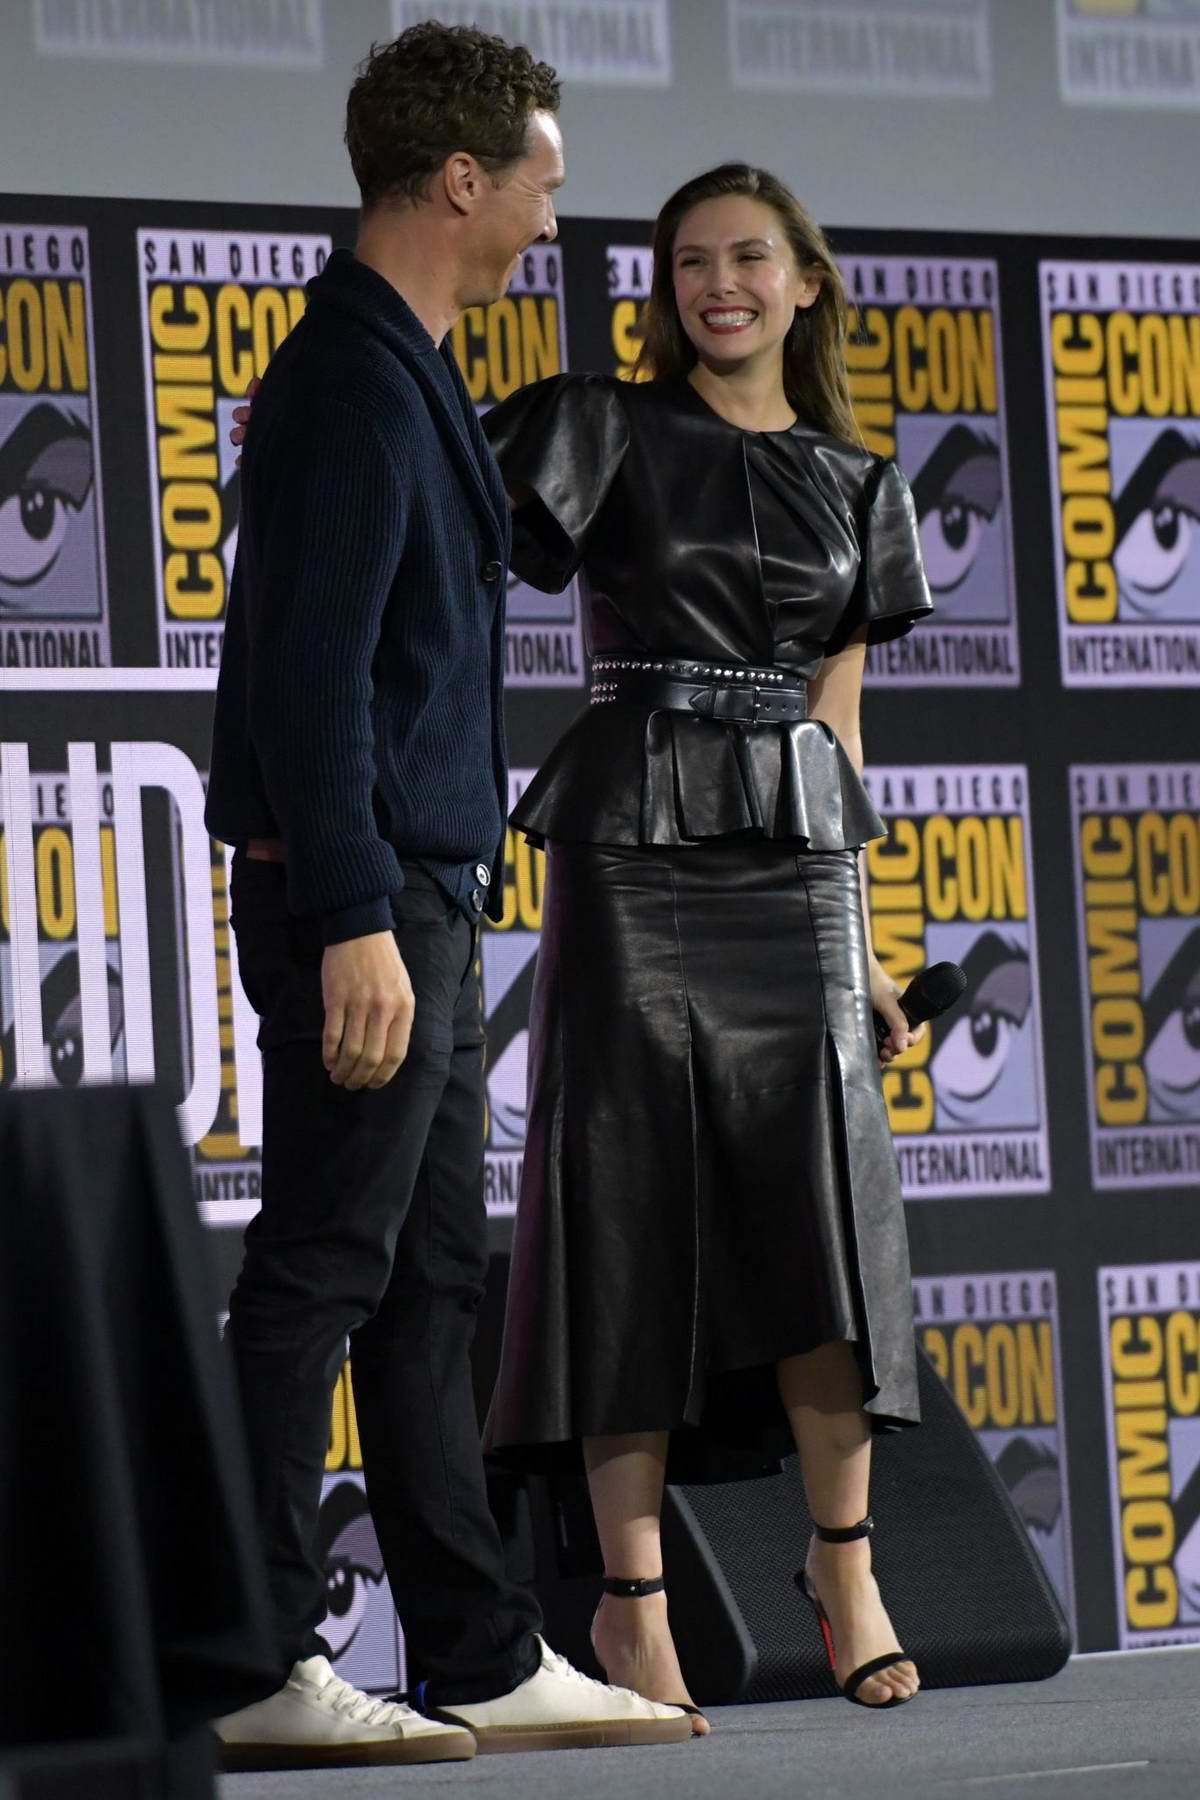 Elizabeth Olsen attends the 'Marvel' panel during 2019 Comic-Con International in San Diego, California